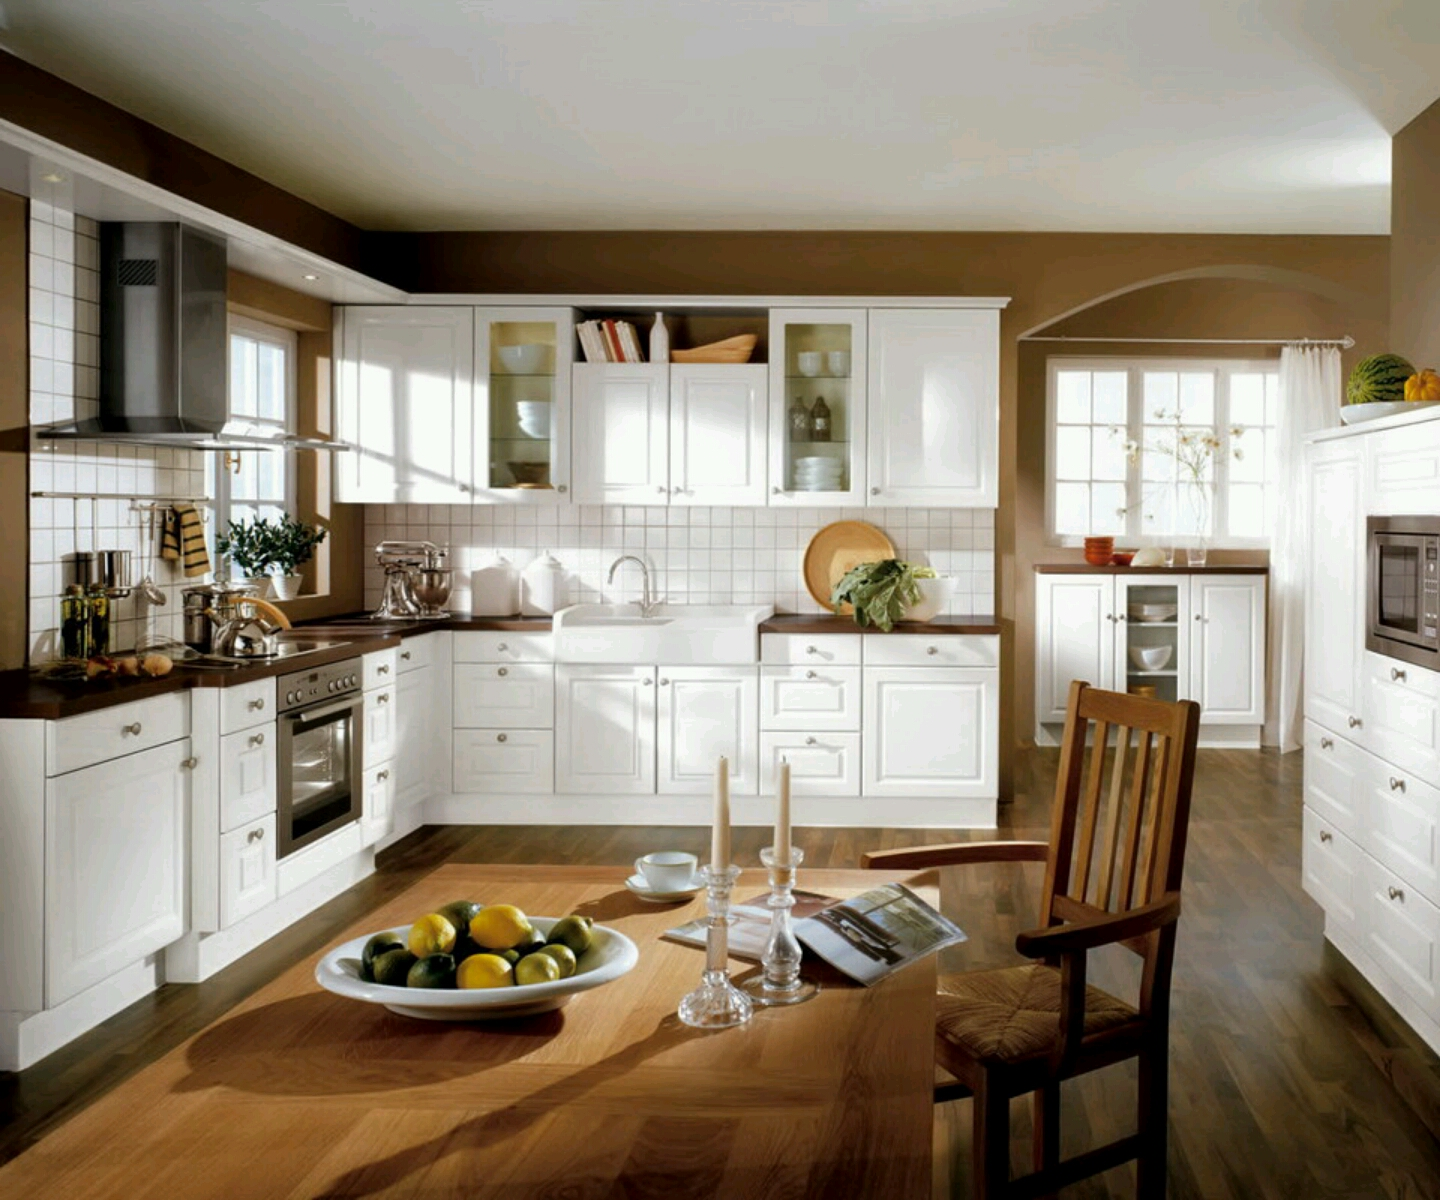 20 modern kitchen design ideas for 2012 pictures long for Kitchen cabinet design